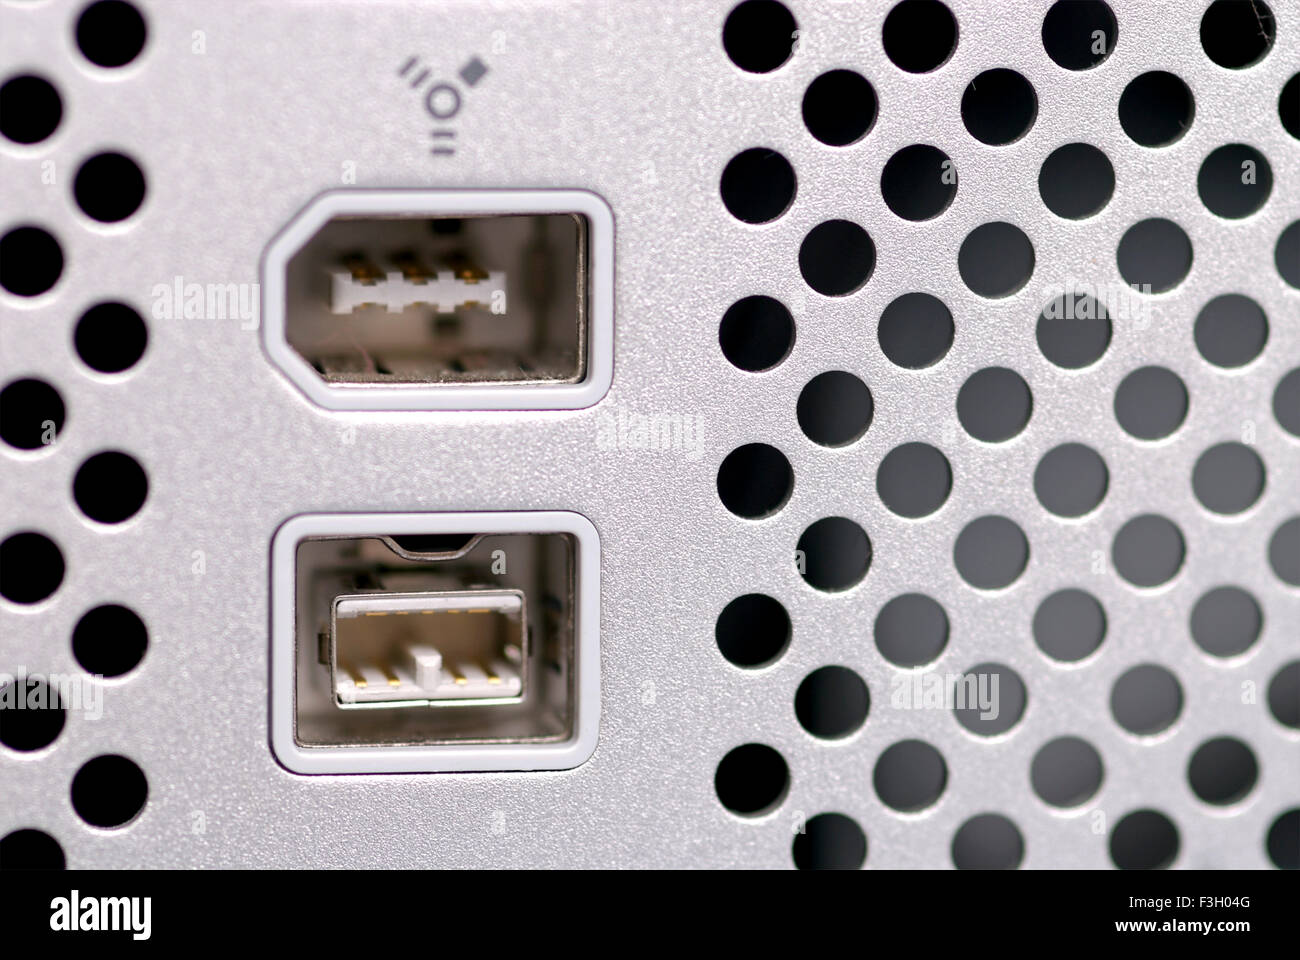 Pair of fire wire 400 and 800 ports - Stock Image